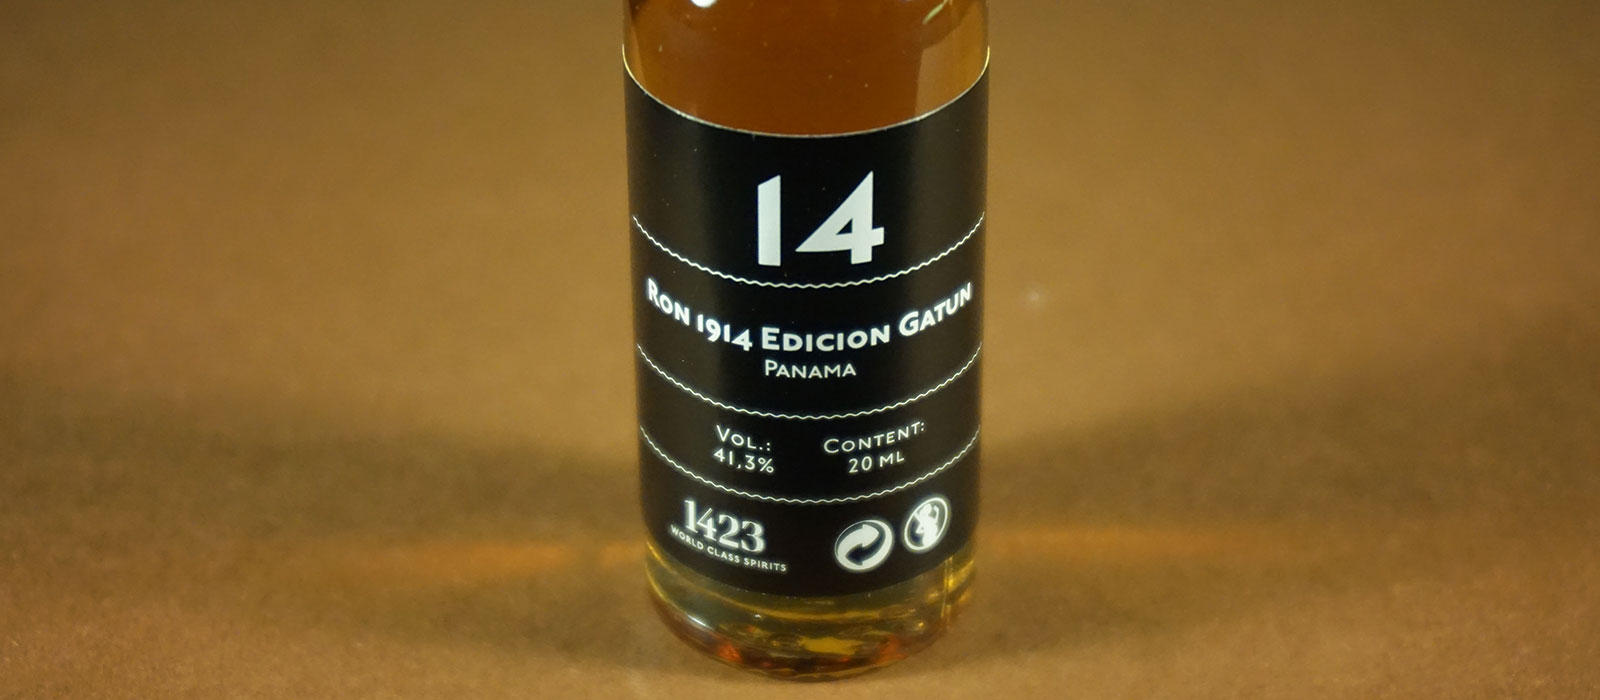 24 Days of Rum 2017: Dag 14 – Ron 1914 Edicion Gatun